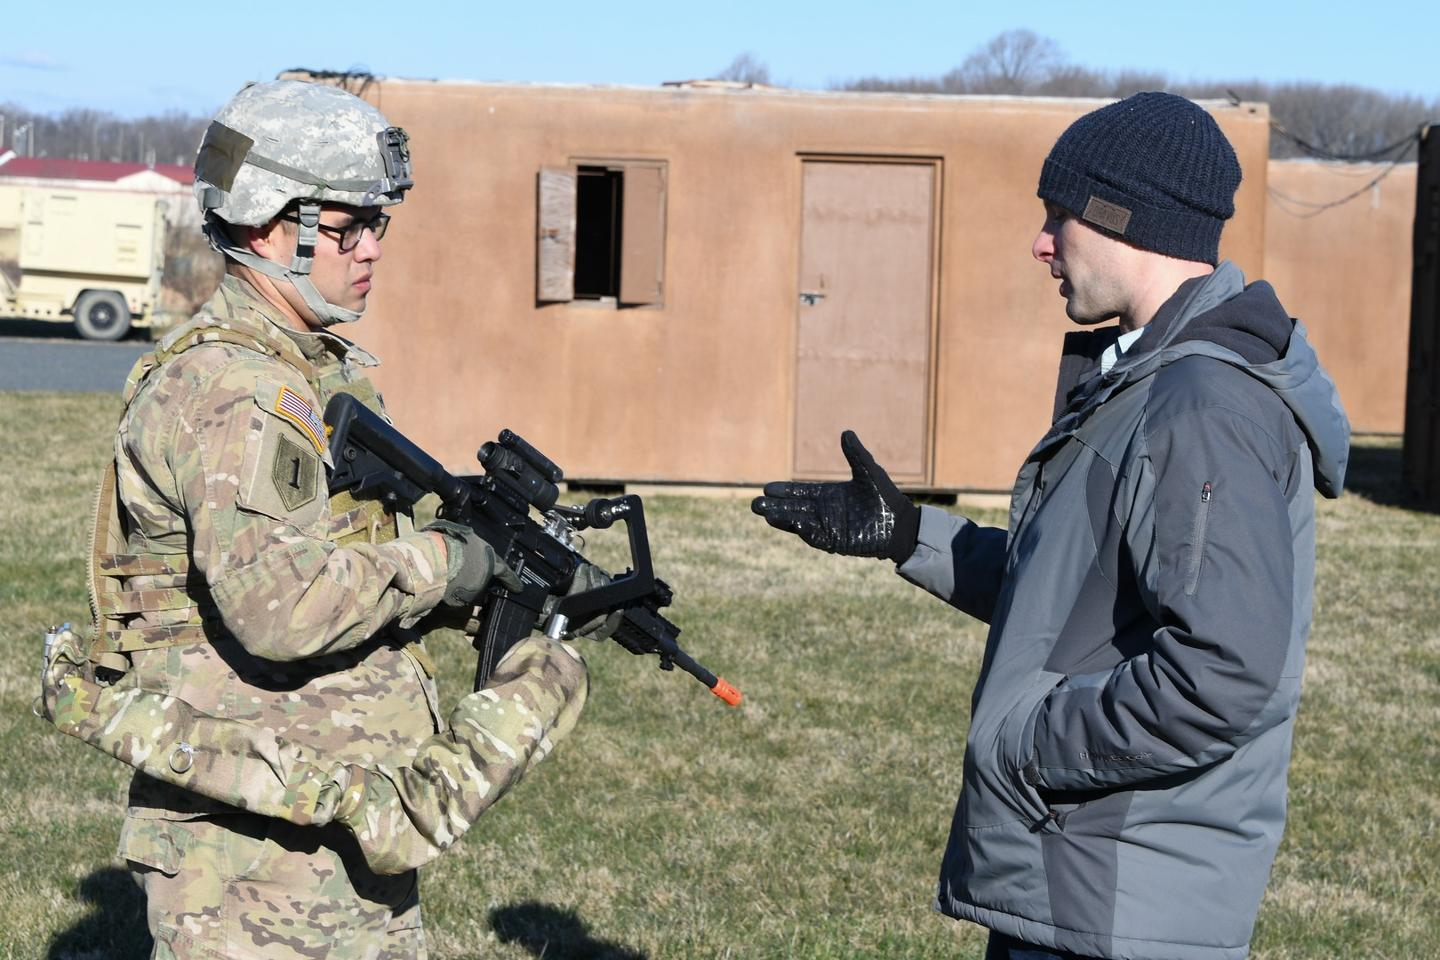 Army researcher Dan Baechle (right) briefs Sgt. Michael Zamora on how to use the Third Arm exoskeleton device